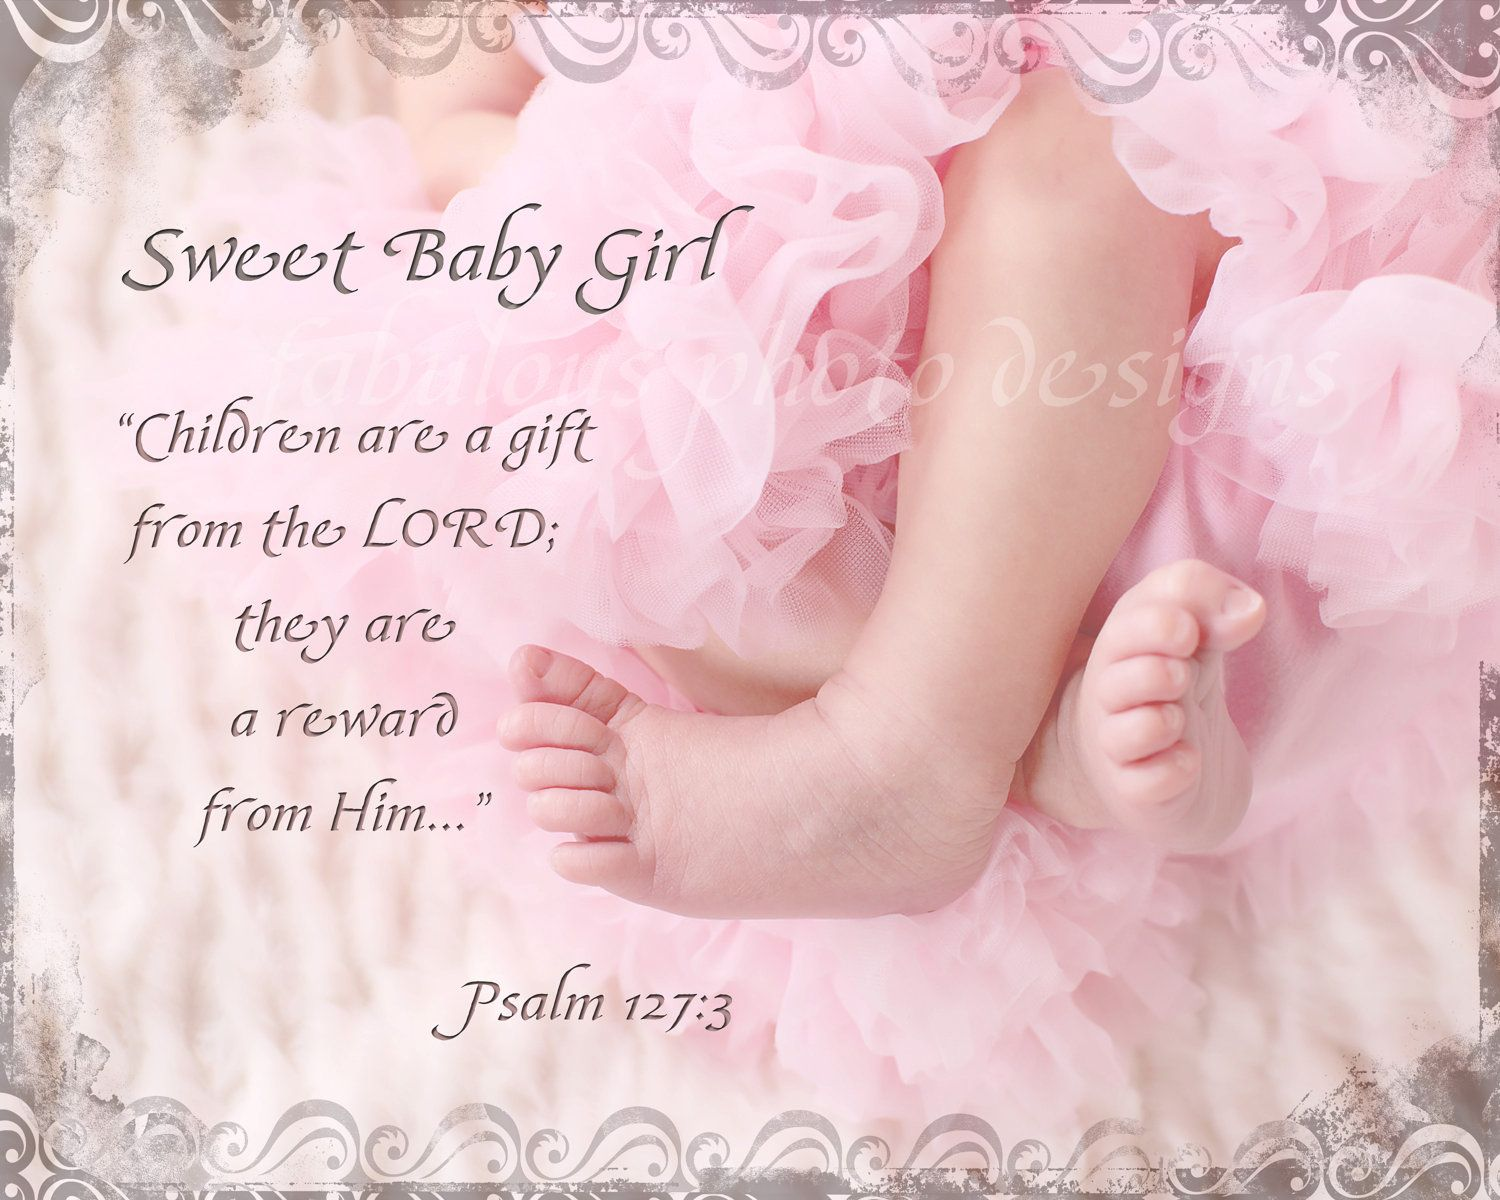 8x10 sweet baby girl or custom name birthdate nursery room decor 8x10 sweet baby girl or custom name birthdate nursery room decor christian art photo scripture bible verse psalm 1273 home decor kristyandbryce Images